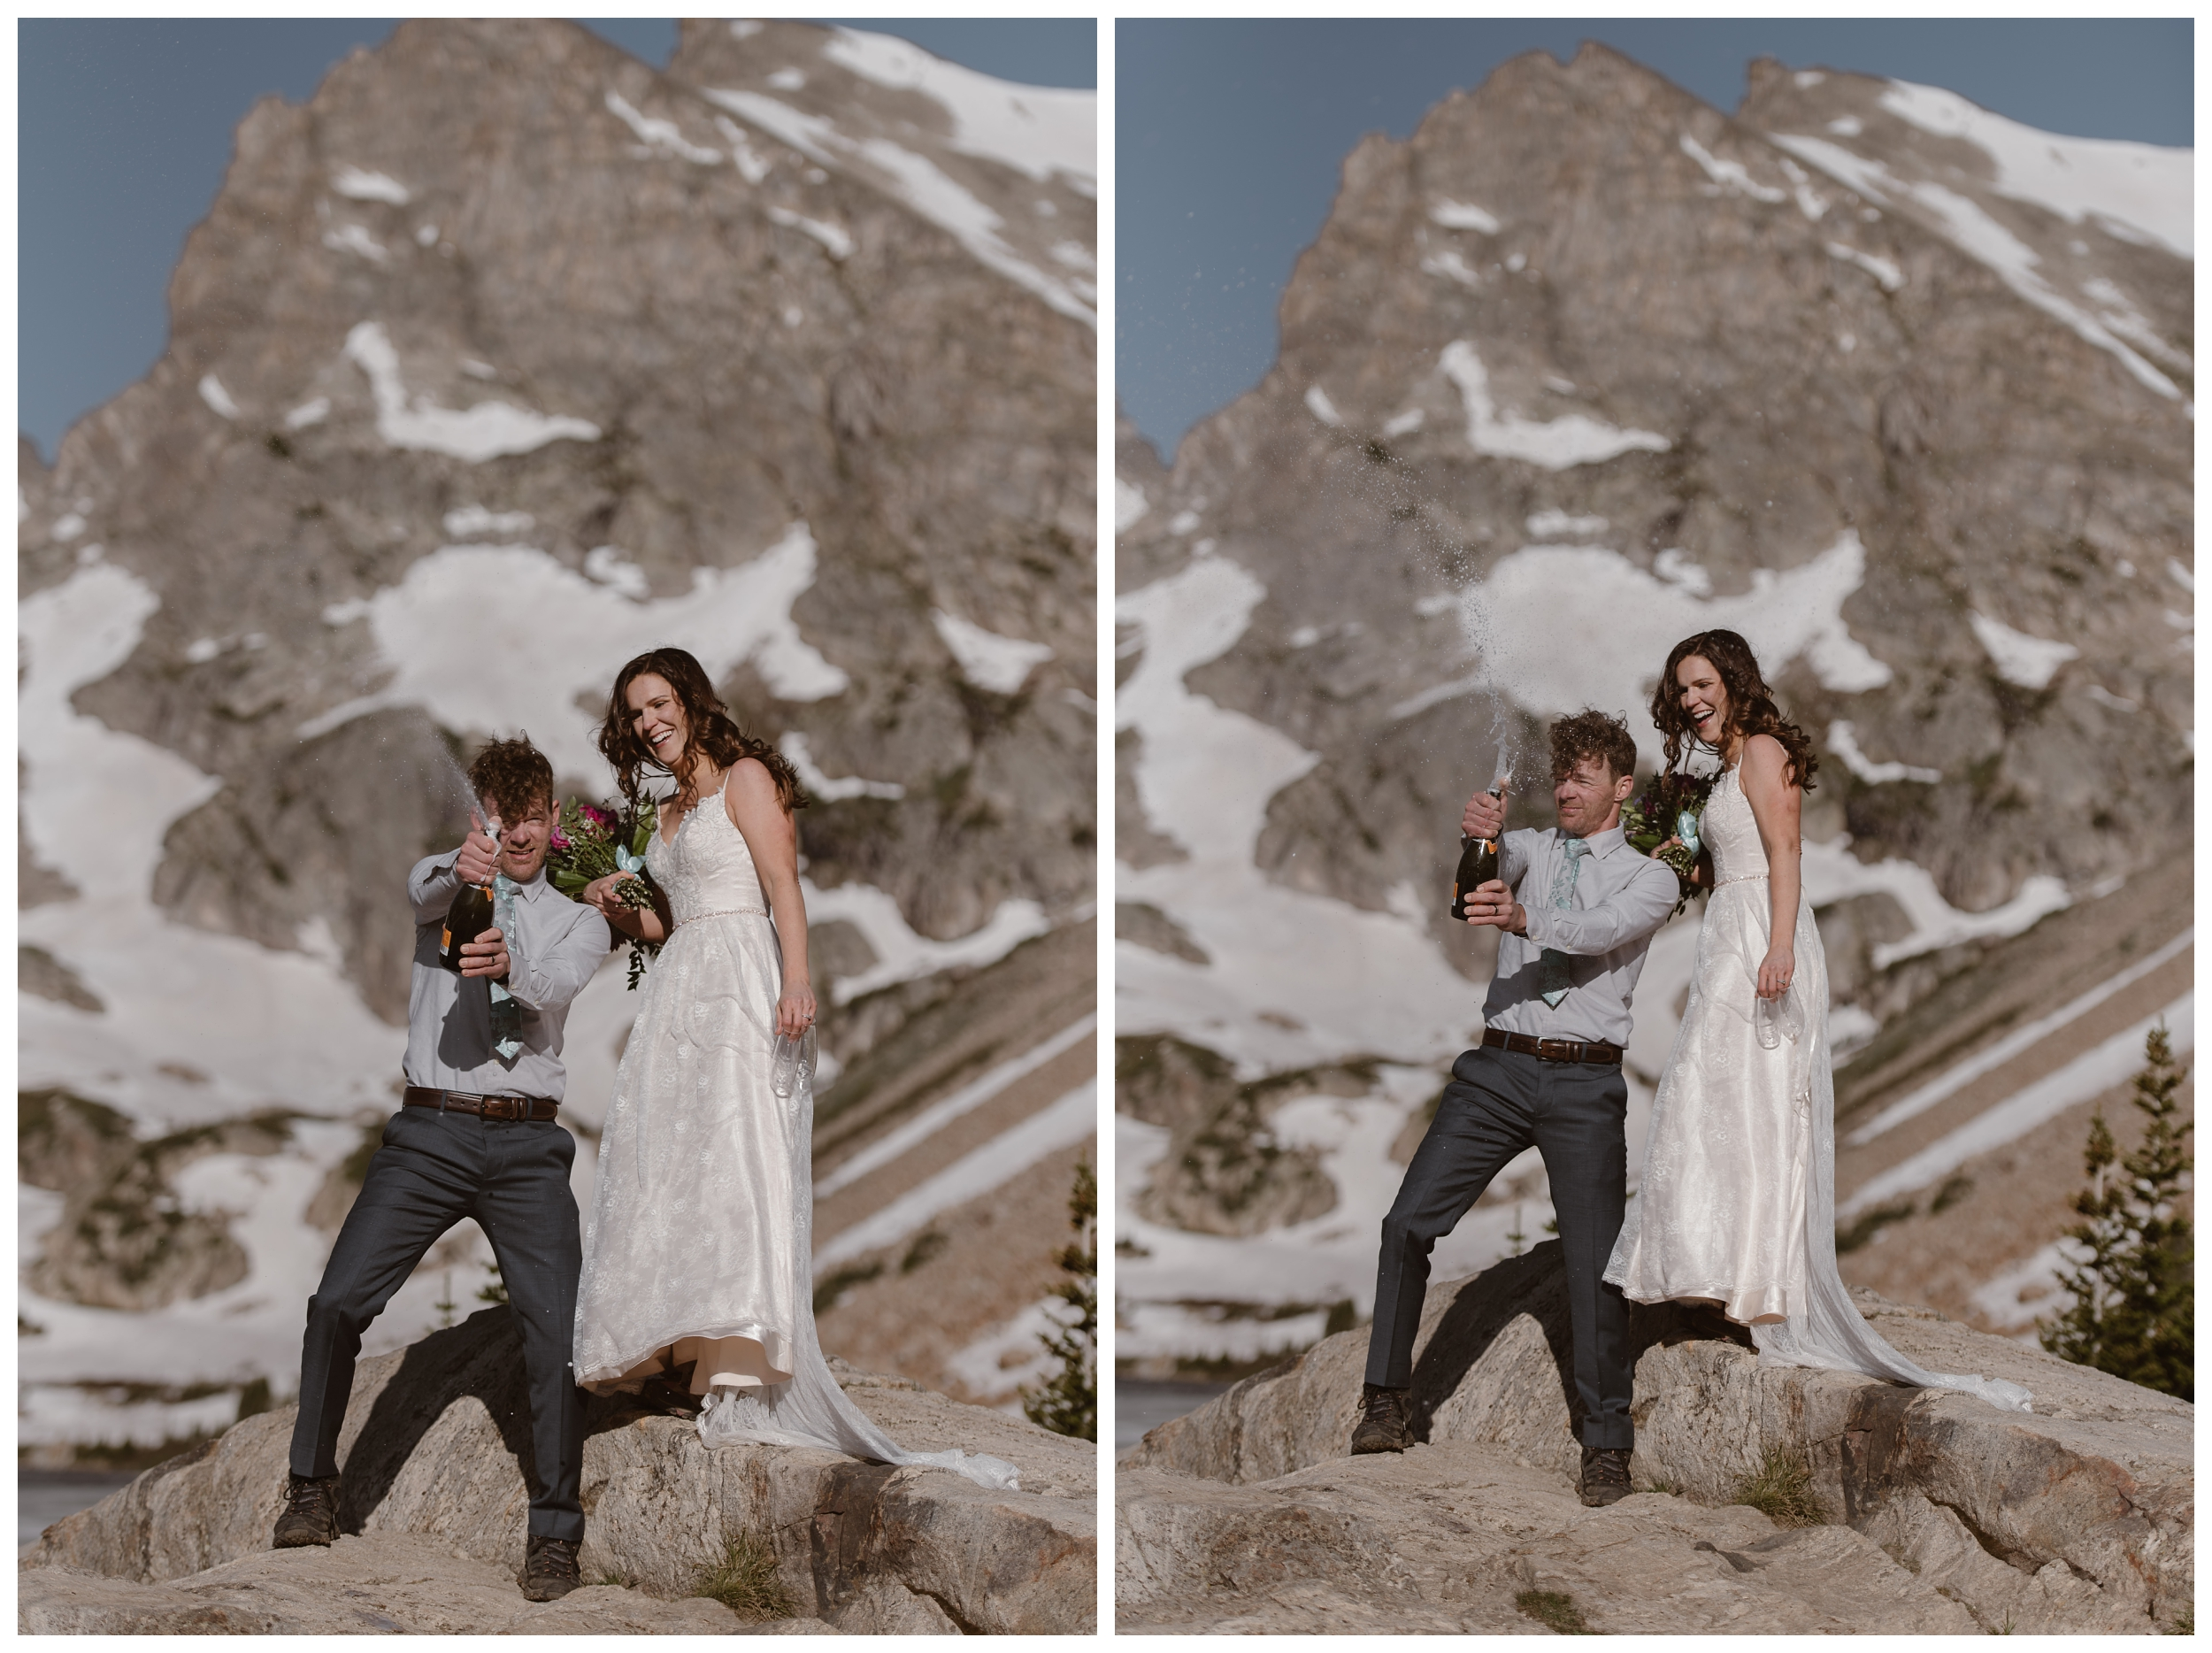 Karen and Matt celebrate their high alpine lake hiking adventure elopement ceremony at the top of Lake Isabelle outside Nederland Colorado by spraying a bottle of champagne. Photo by Adventure Instead, Maddie Mae.